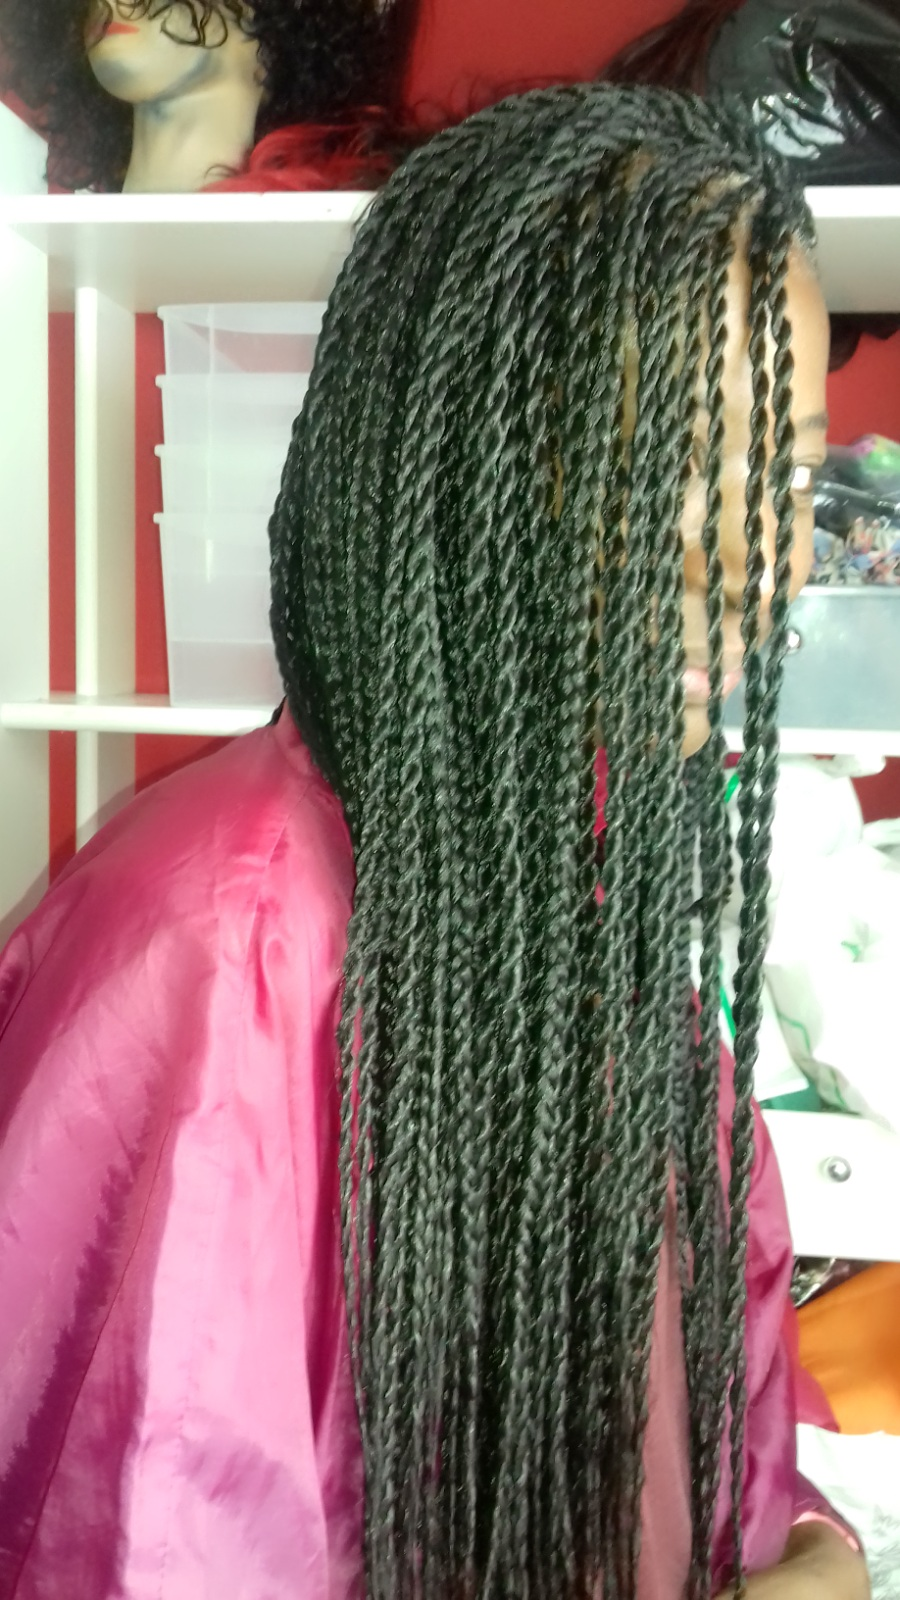 salon de coiffure afro tresse tresses box braids crochet braids vanilles tissages paris 75 77 78 91 92 93 94 95 AZTBXAHK